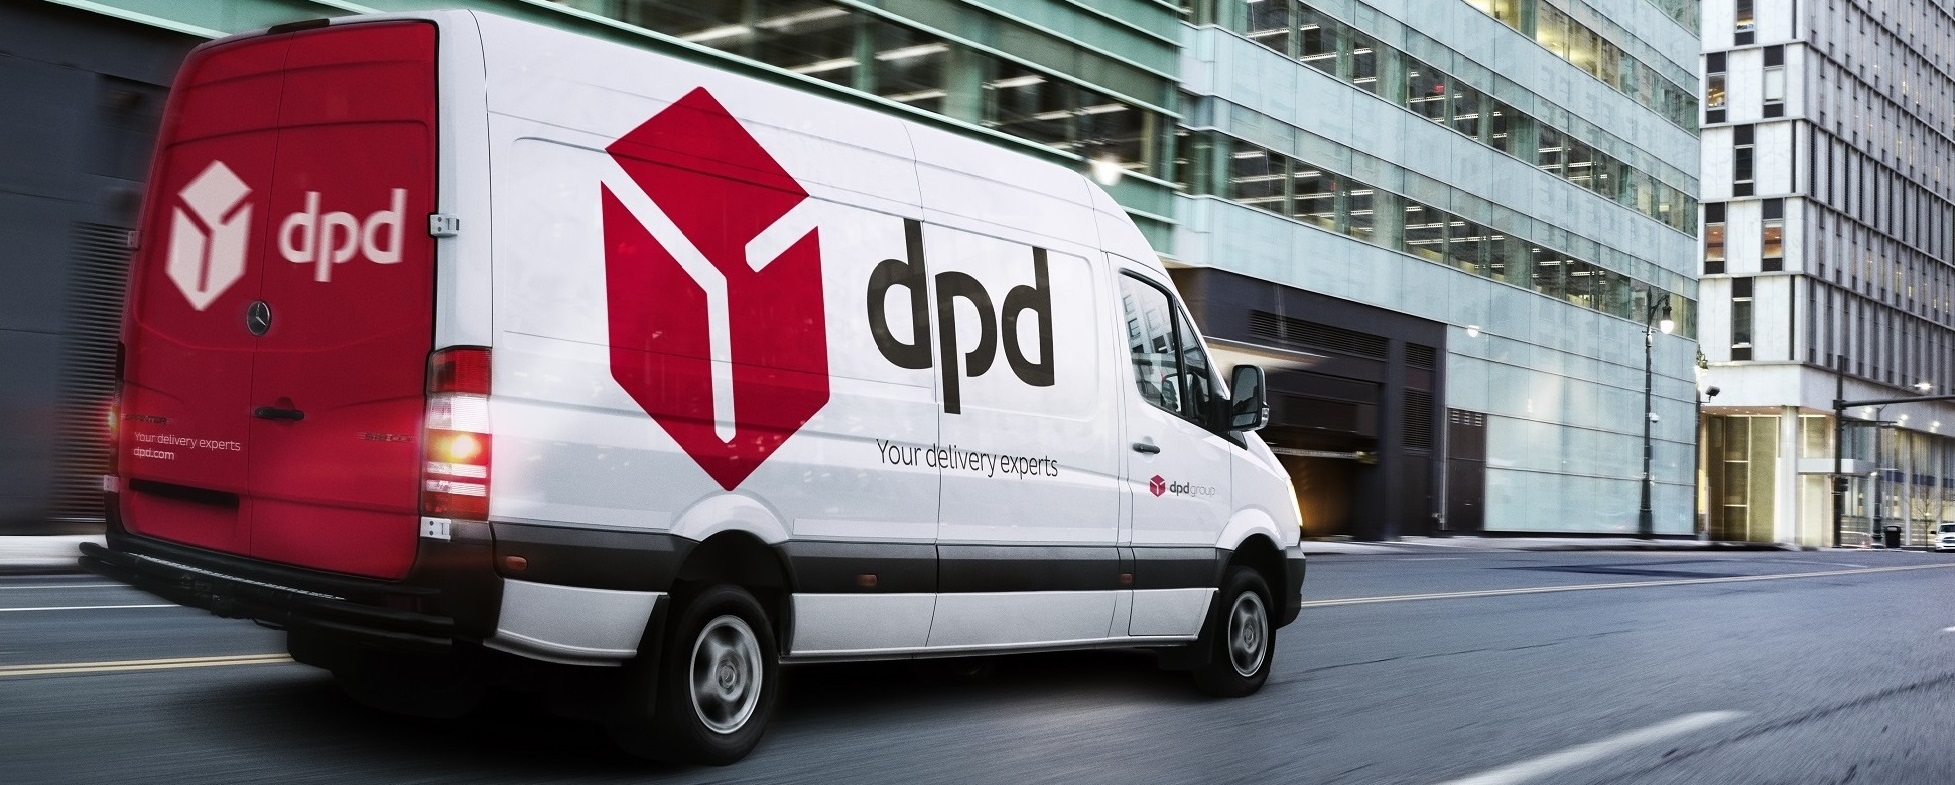 DPD Ireland's largest courier company - Home